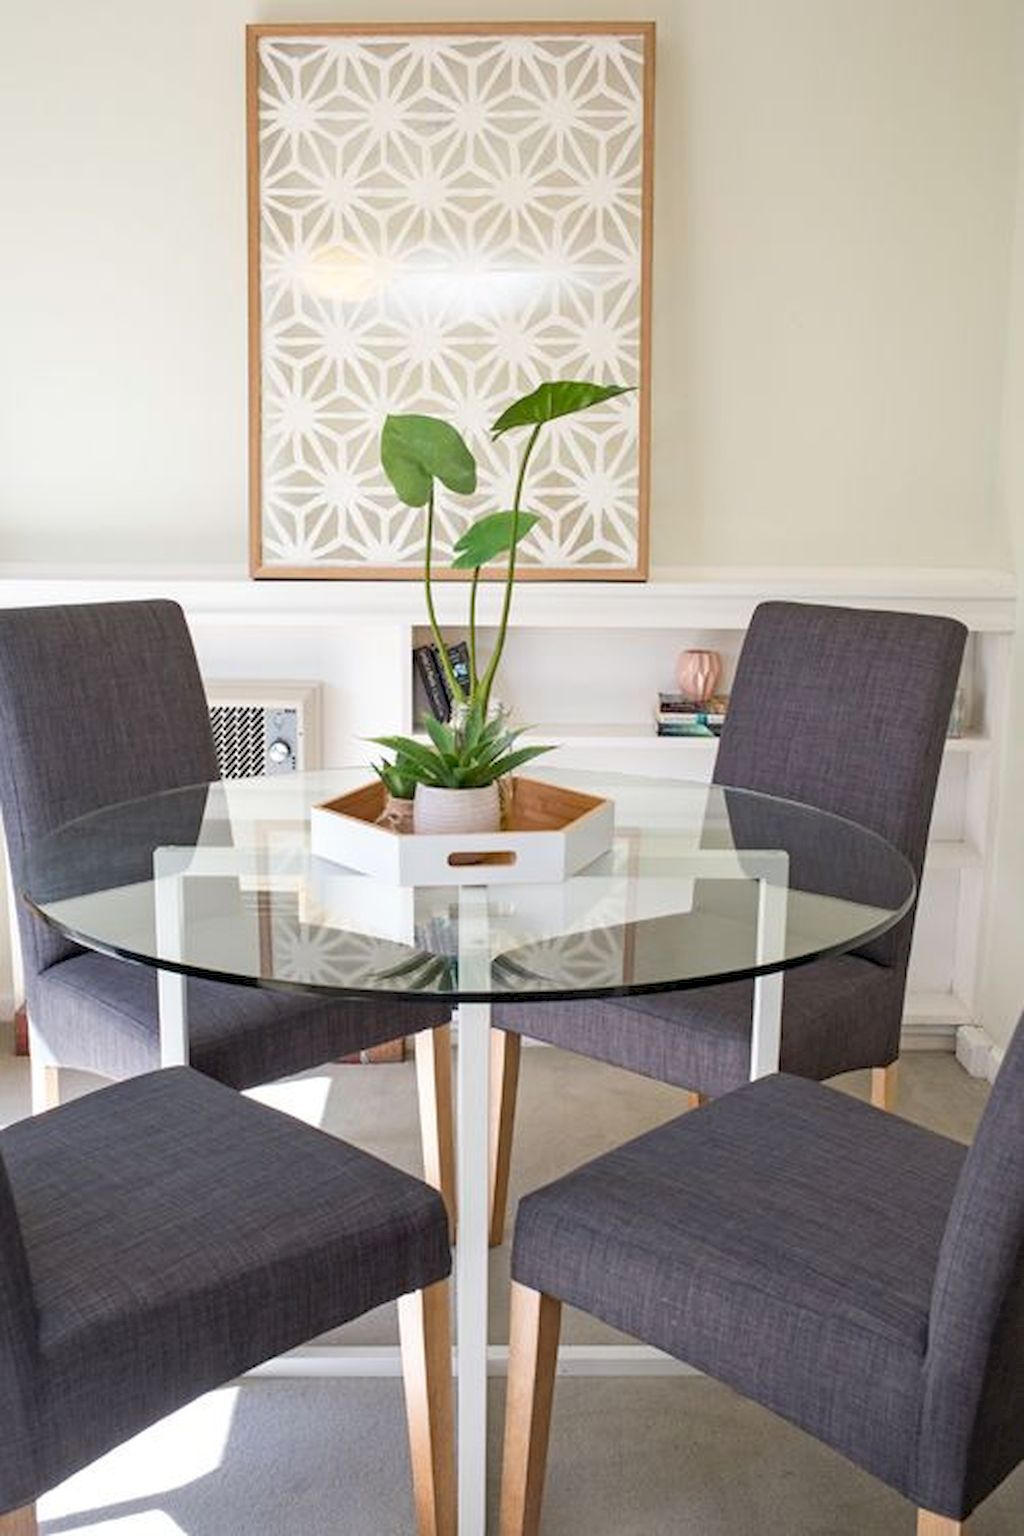 Design Space Saving Dining Room For Your Apartment Home To Z Round Dining Room Table Round Dining Room Glass Dining Room Table